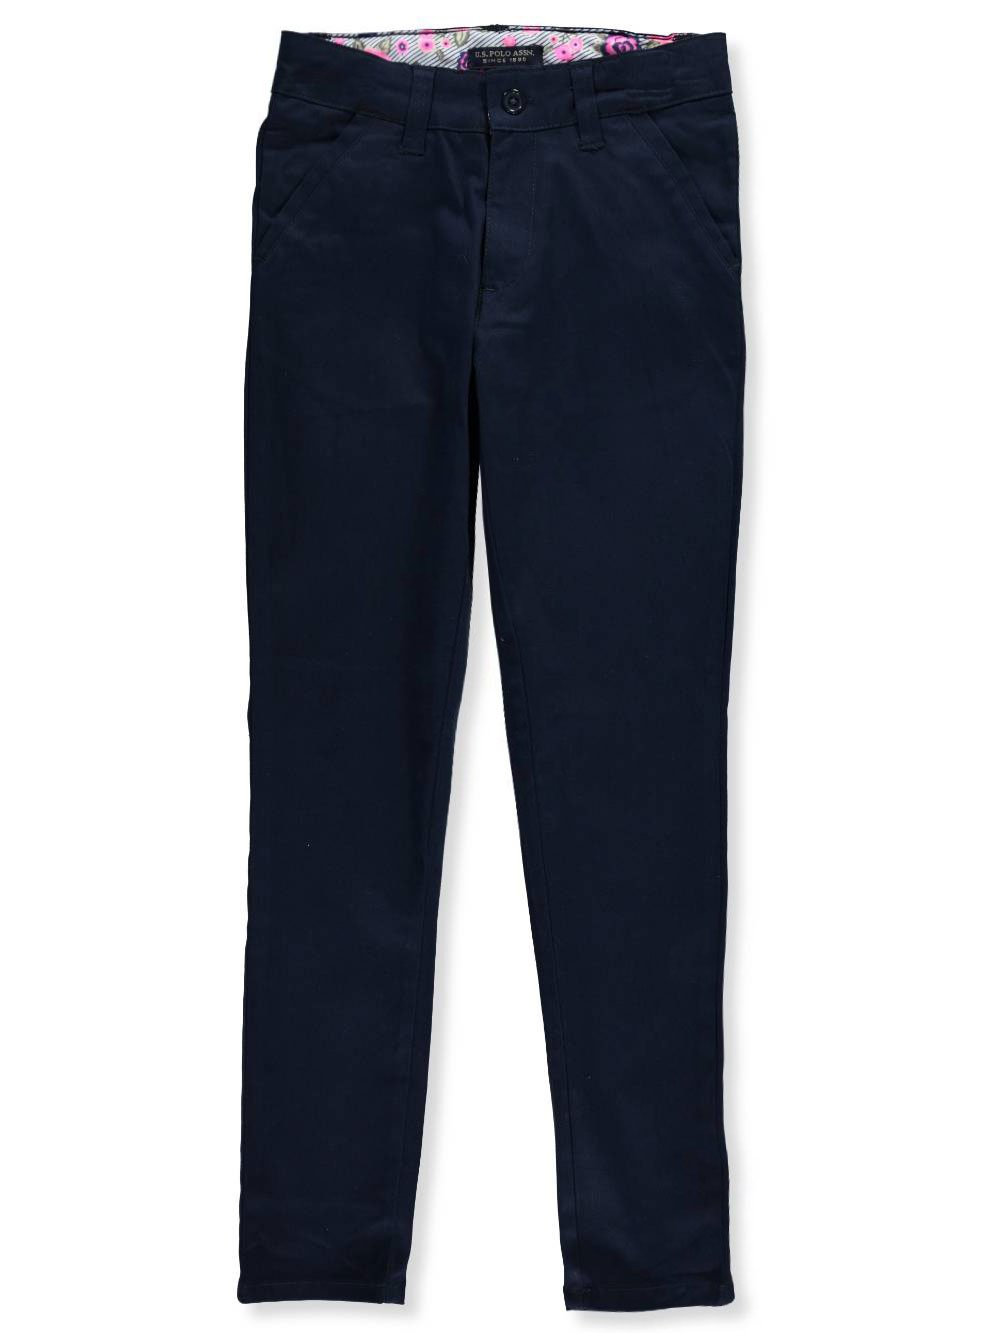 U.S. Polo Assn.. Little Girls' Toddler Skinny Pants - Navy, 4t